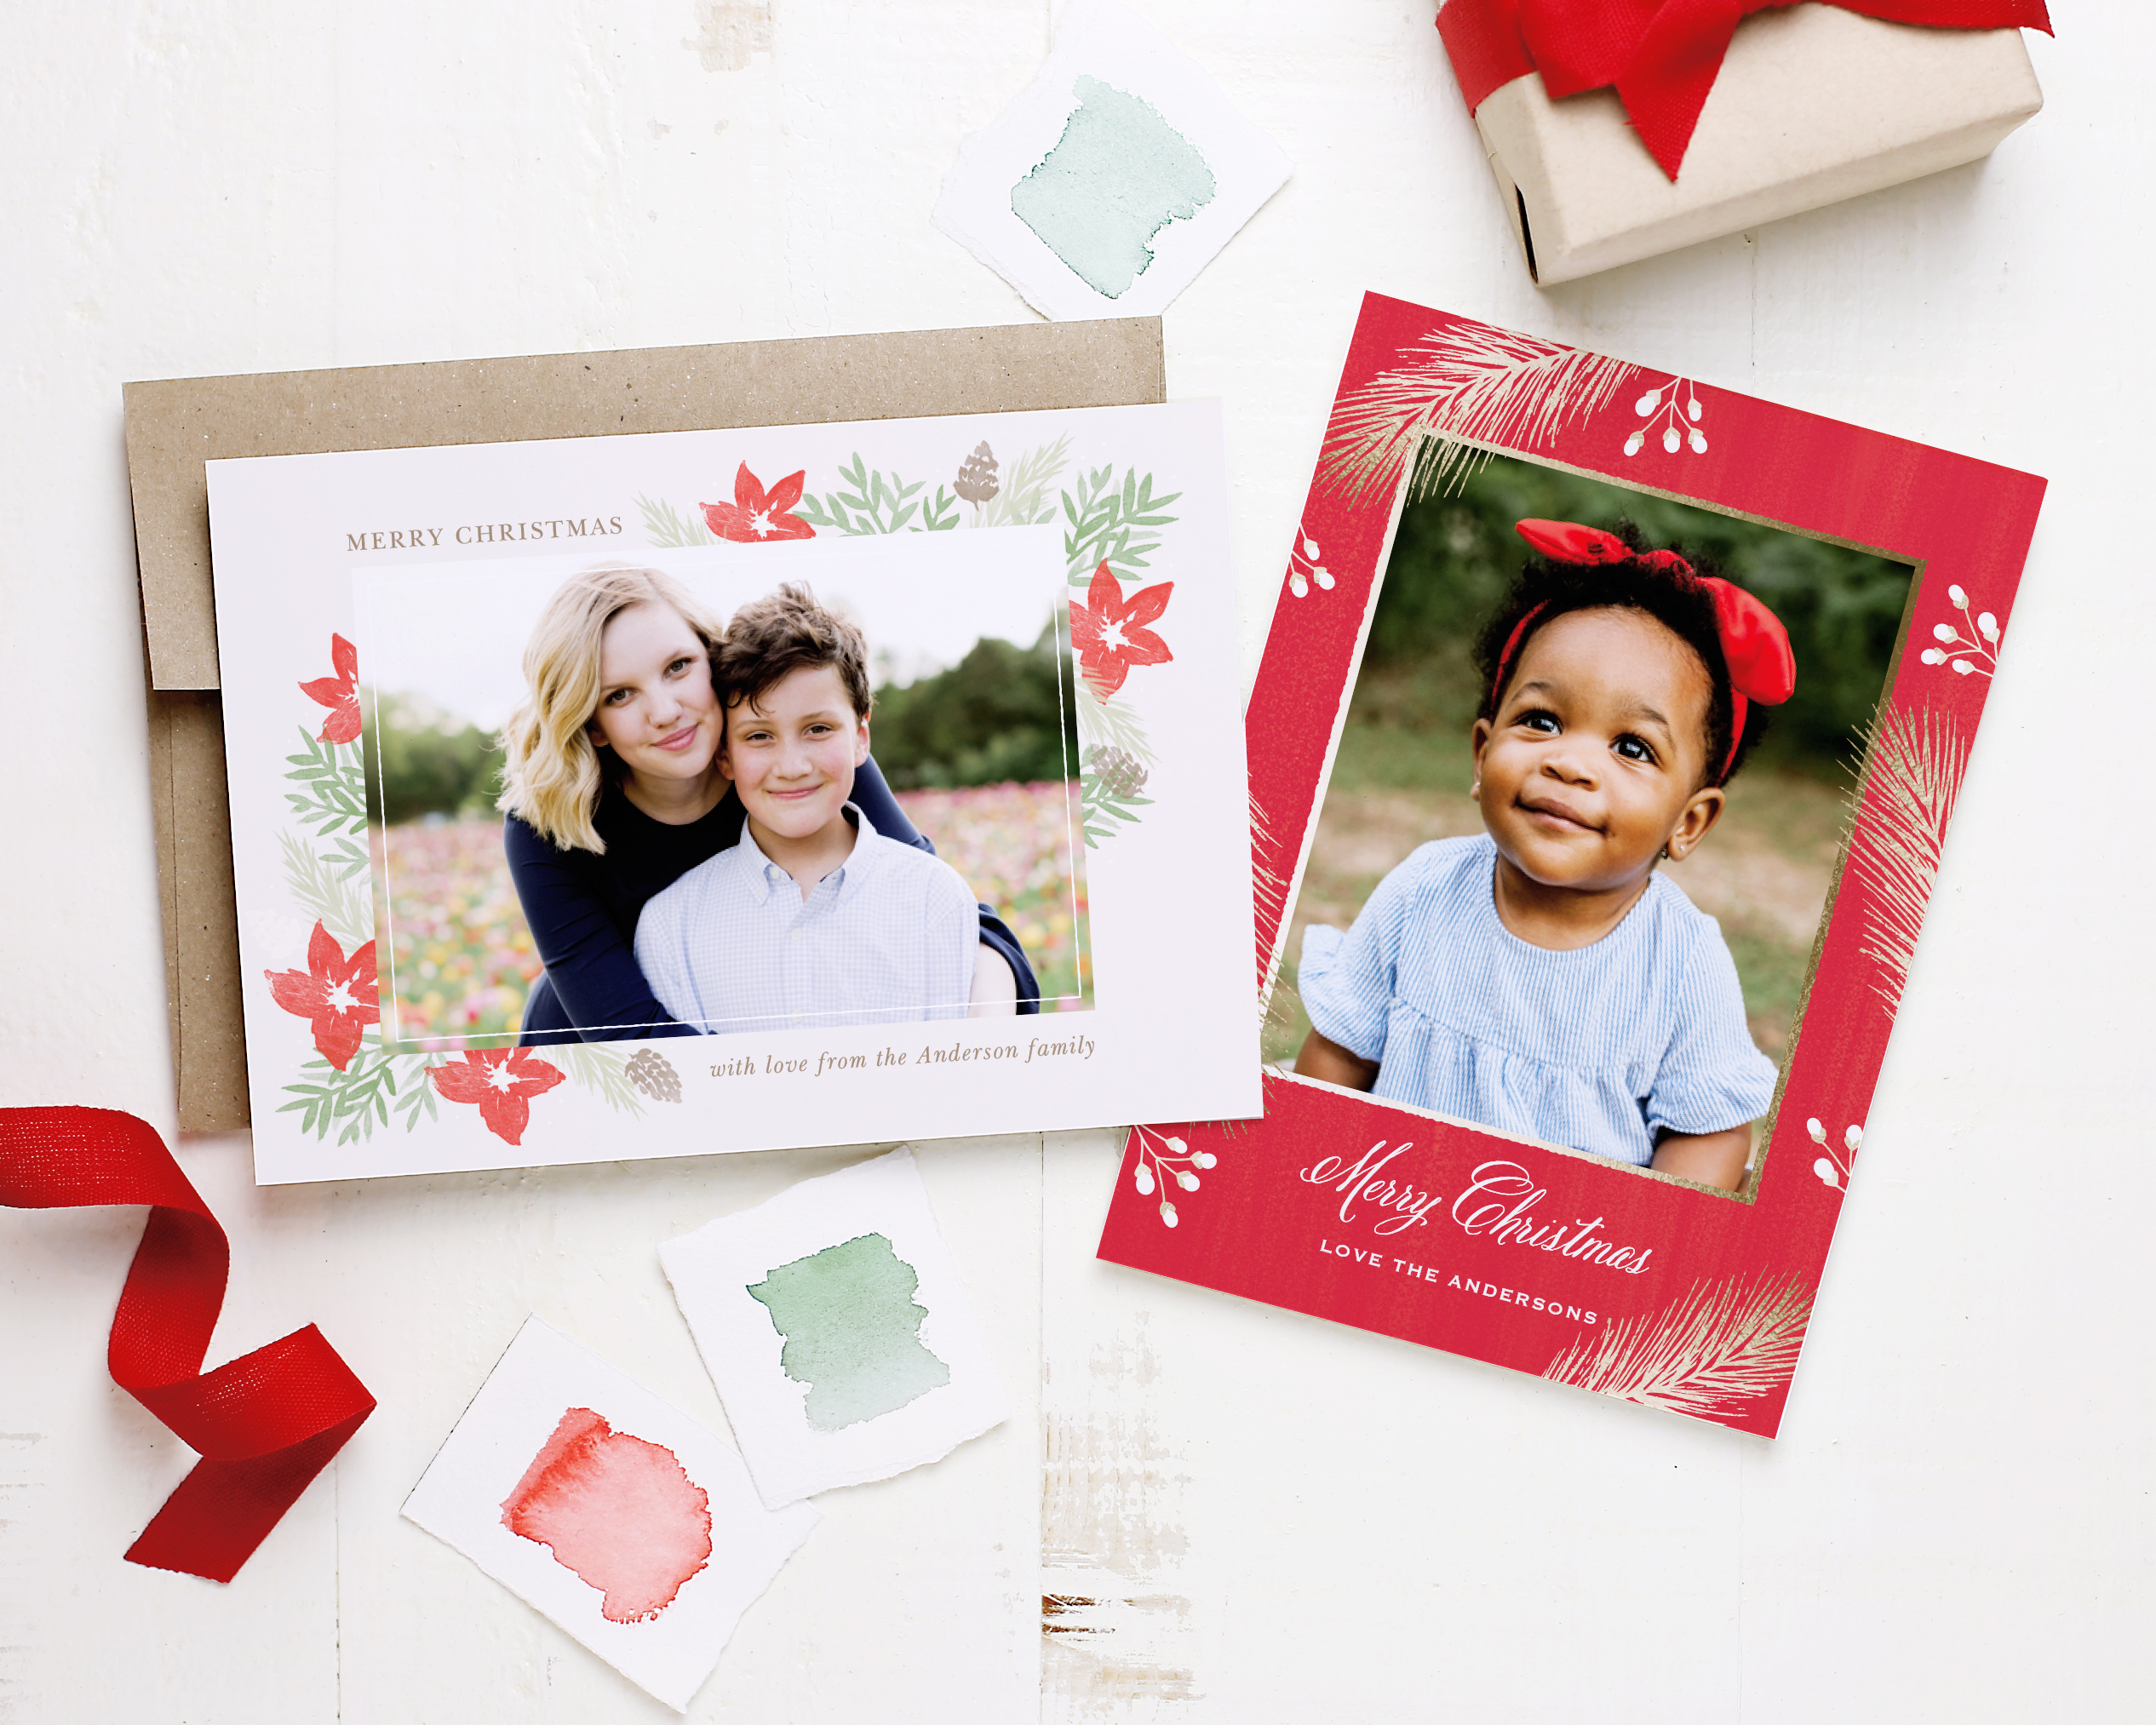 Staying Touch Xmas Cards Header Image